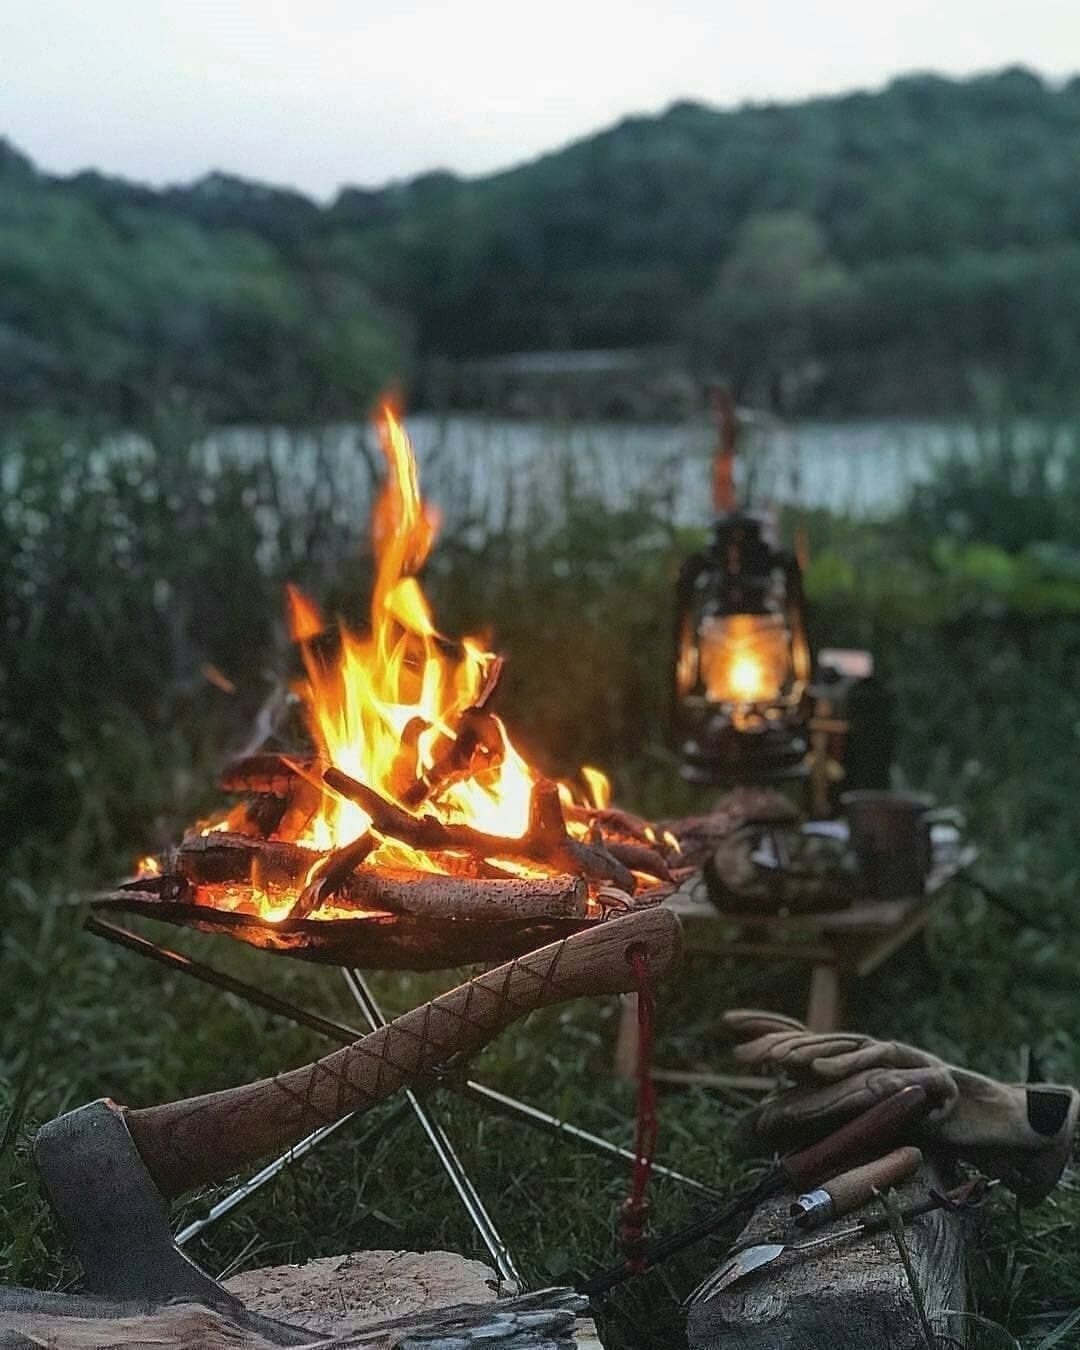 Campfire Cooking The Sound Of Fire Is So Soothing Tag Someone Who Likes It Weeken Camping Deracom1122 Dogadaki Etkinlikler Kamp Atesi Doga Seyahati